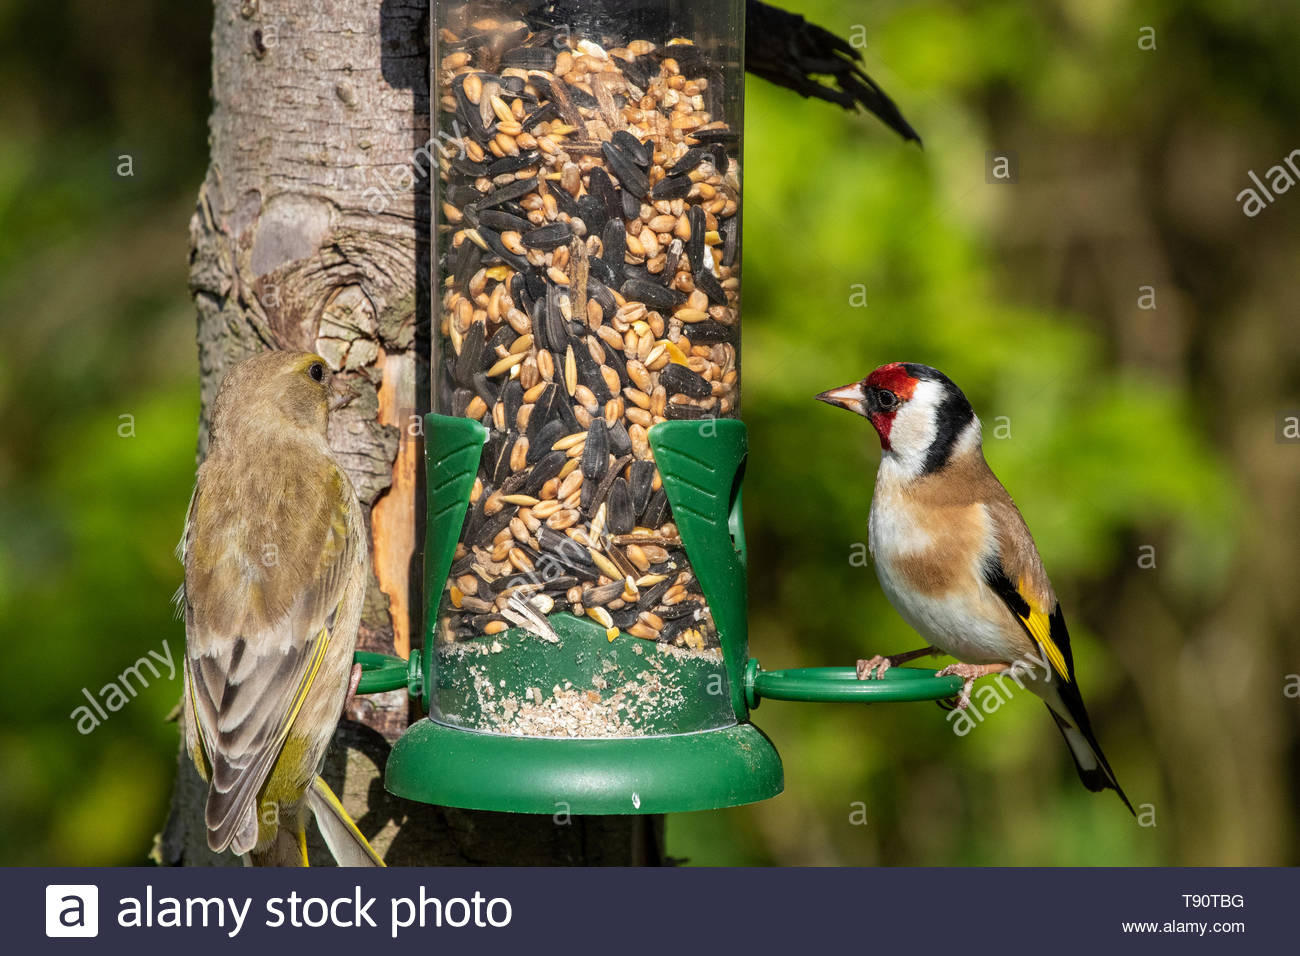 Greenfinch (Carduelis chloris) and Goldfinch (Carduelis carduelis) on garden bird feeder - Stock Image